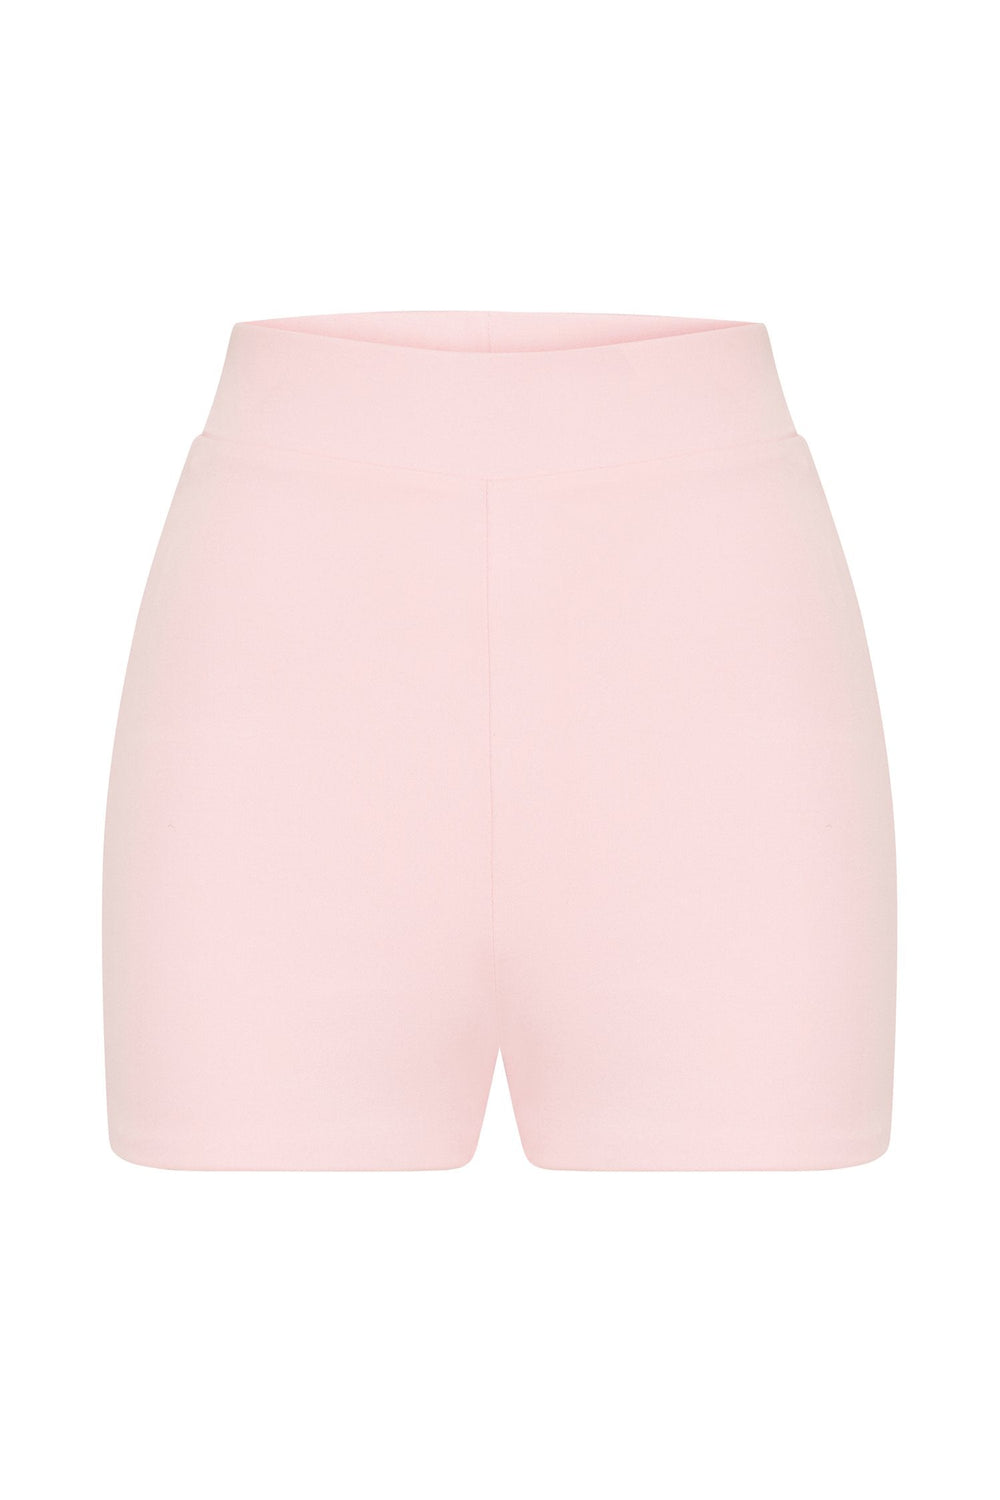 Molly 'Peachy' Shorts - Baby Pink - MESHKI ?id=15661330595915